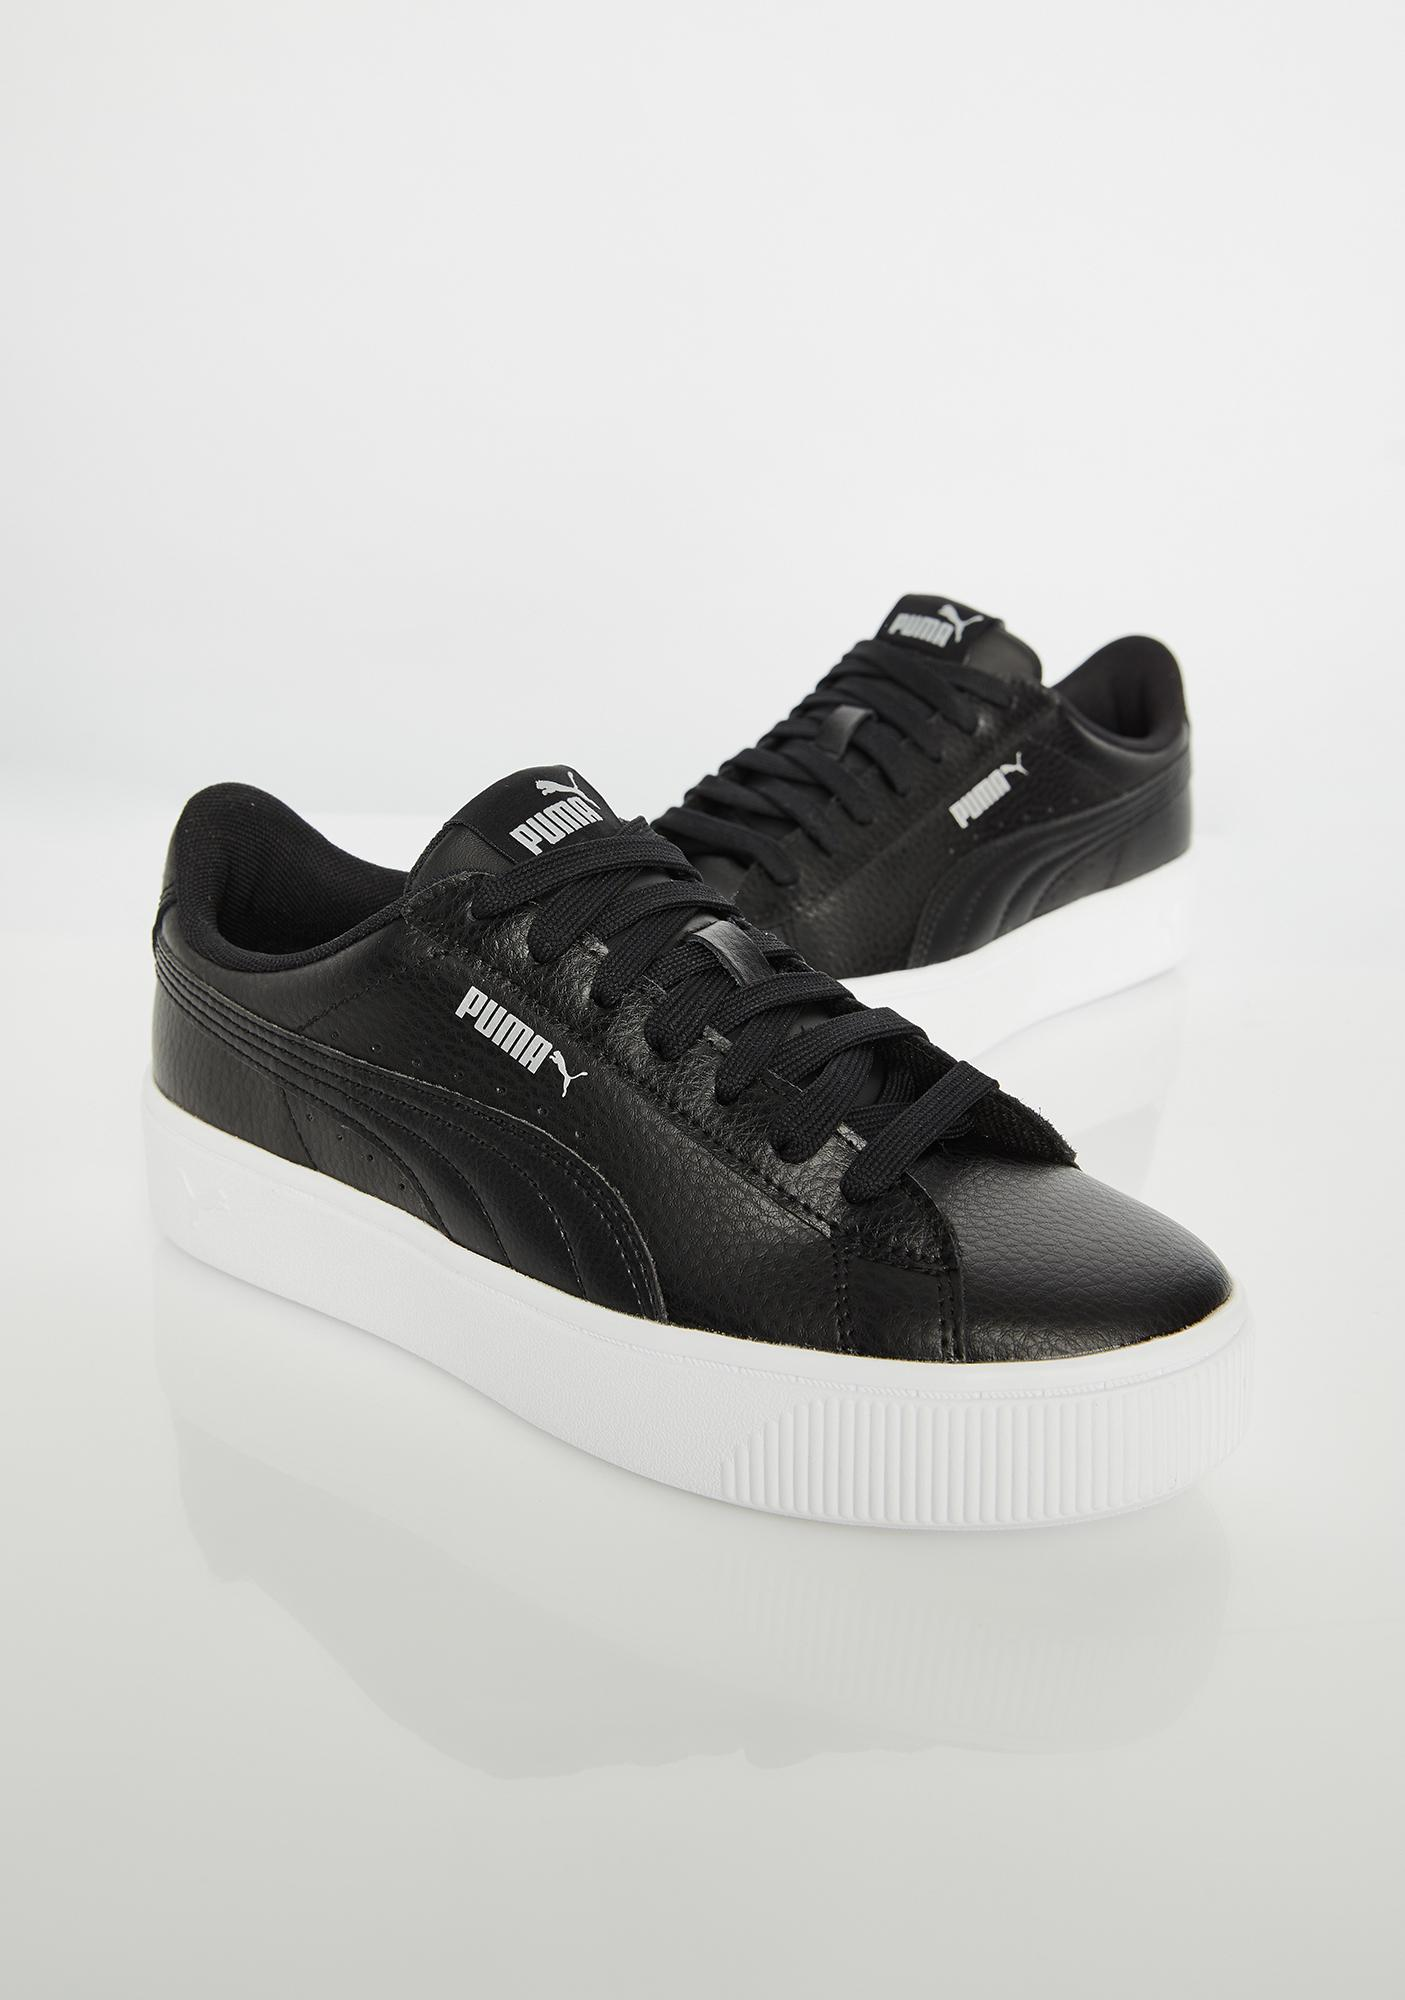 PUMA Dark Vikky Stacked Sneakers